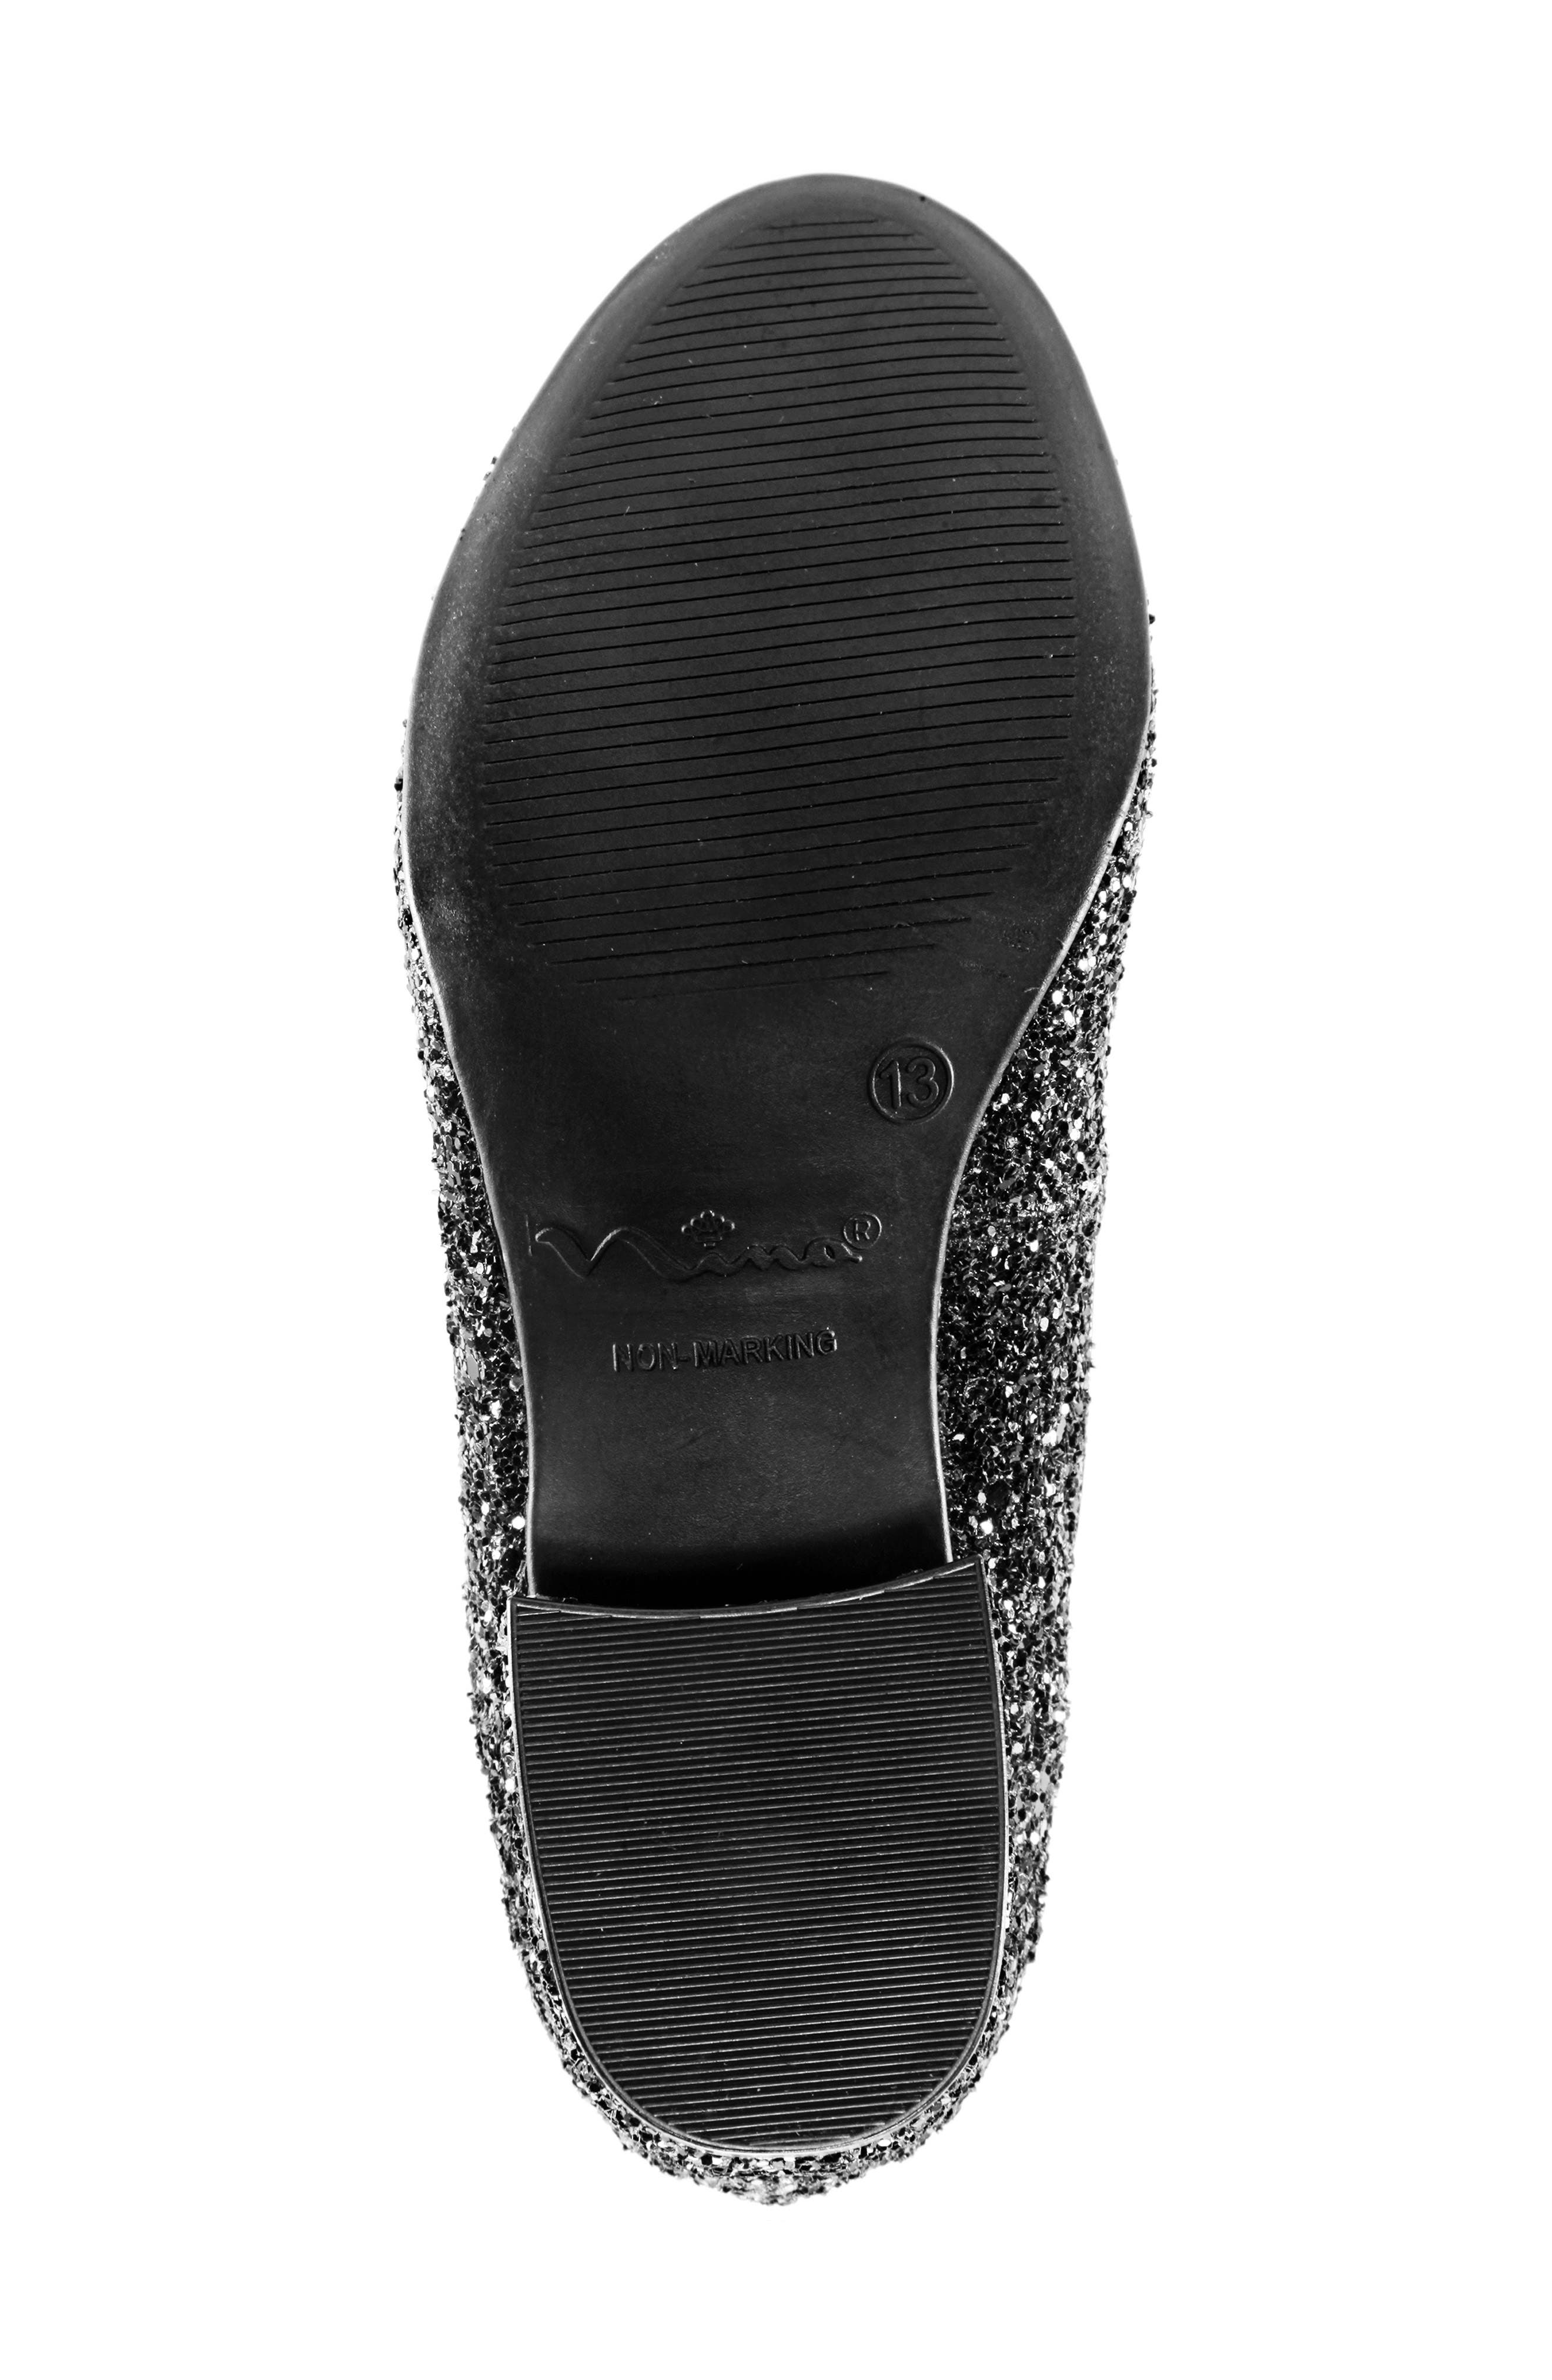 Deisy Glitter Block Heel Pump,                             Alternate thumbnail 6, color,                             BLACK CHUNK GLITTER/ PATENT